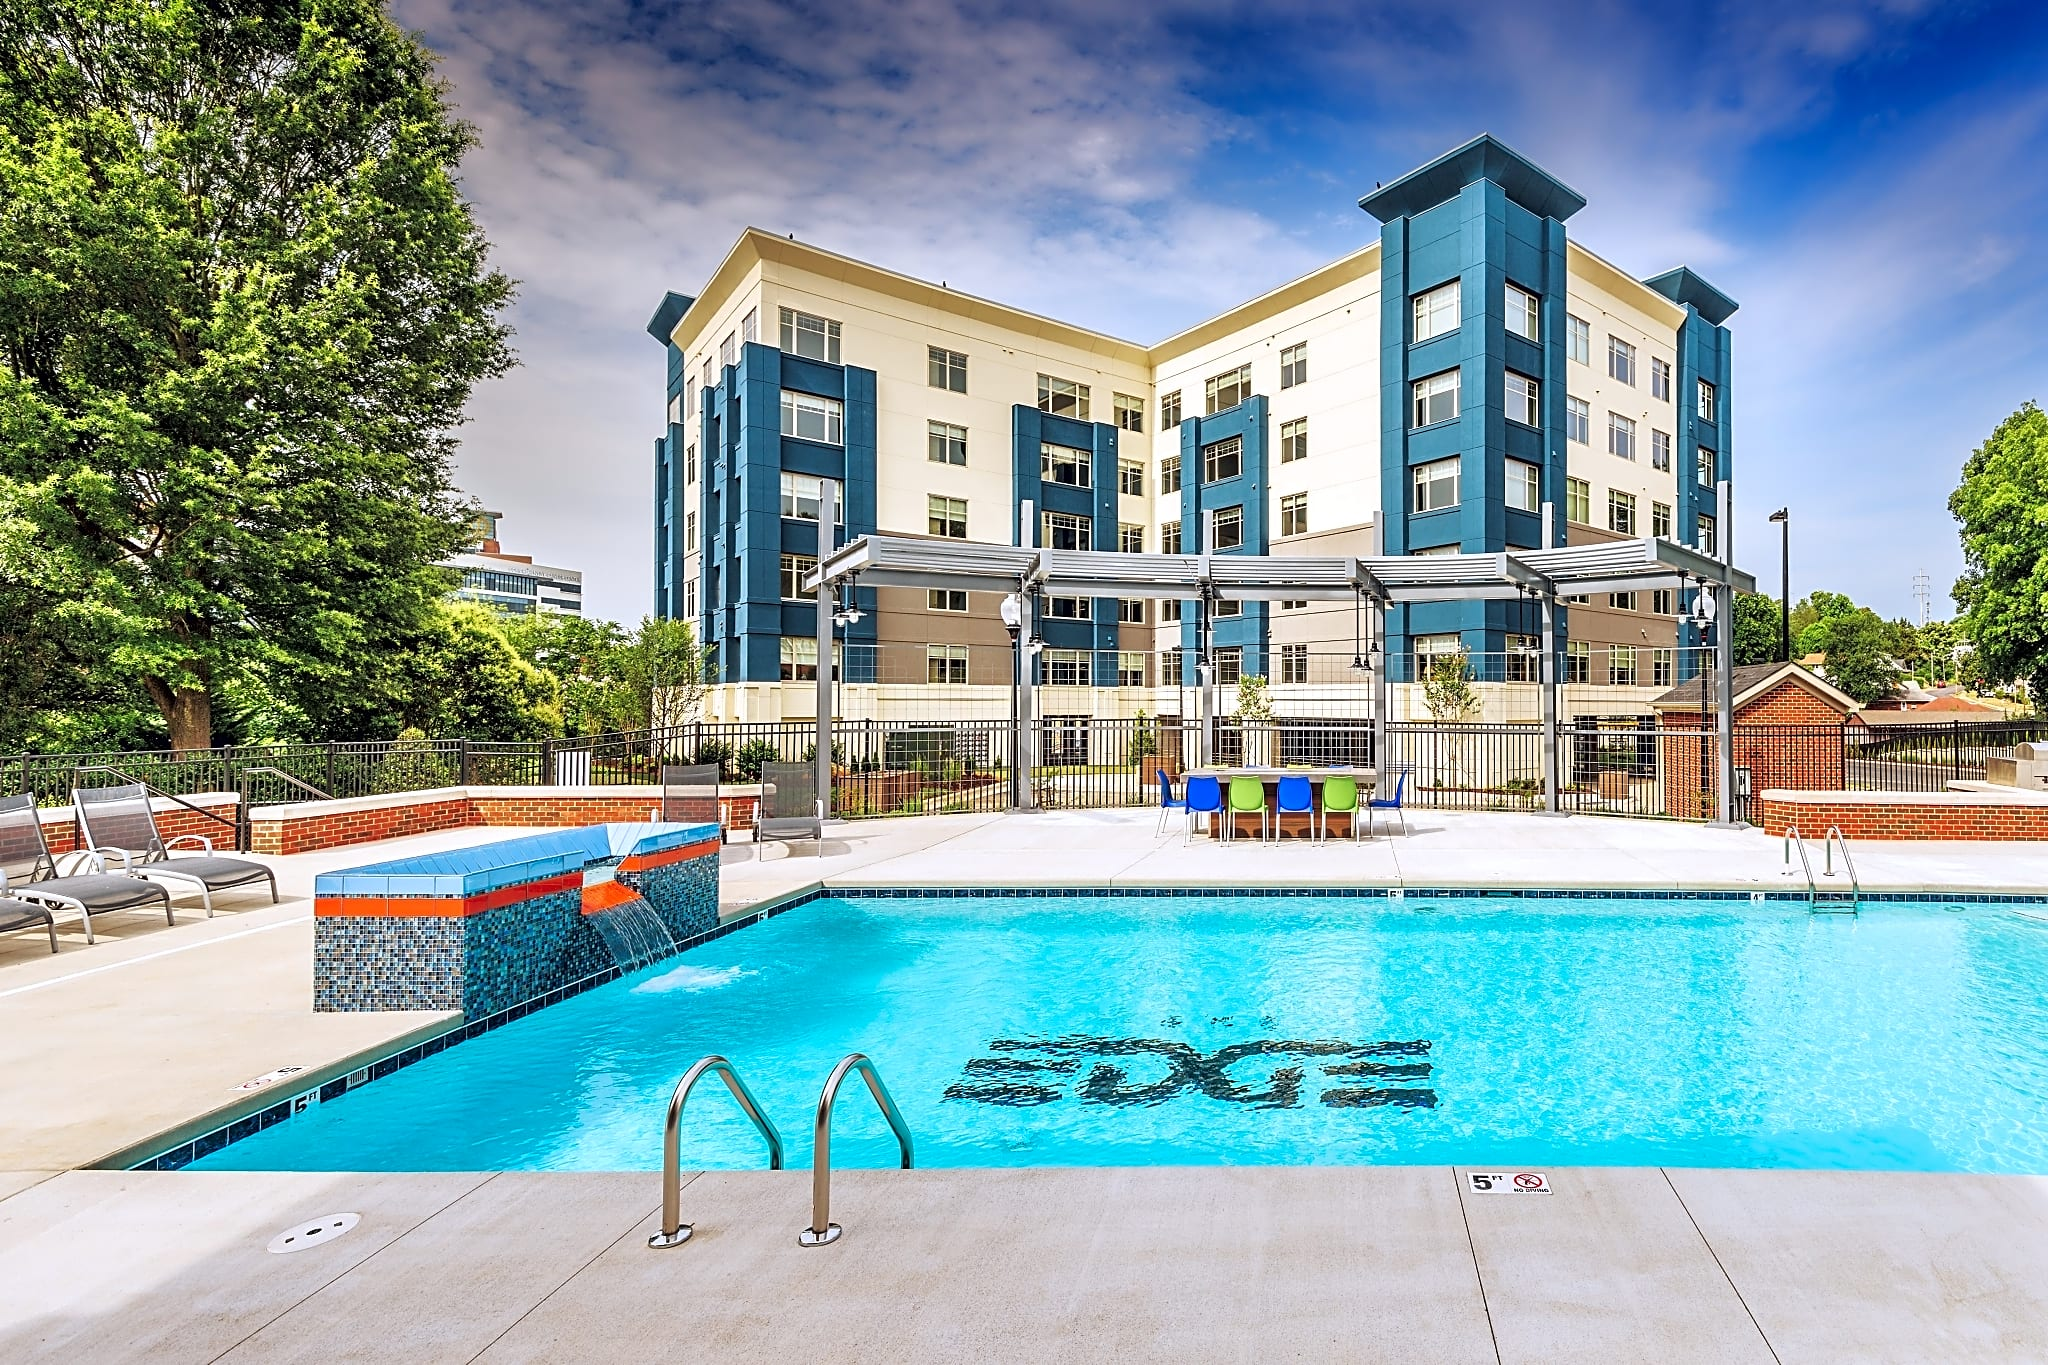 Apartments Near WFU The Edge Flats for Wake Forest University Students in Winston Salem, NC